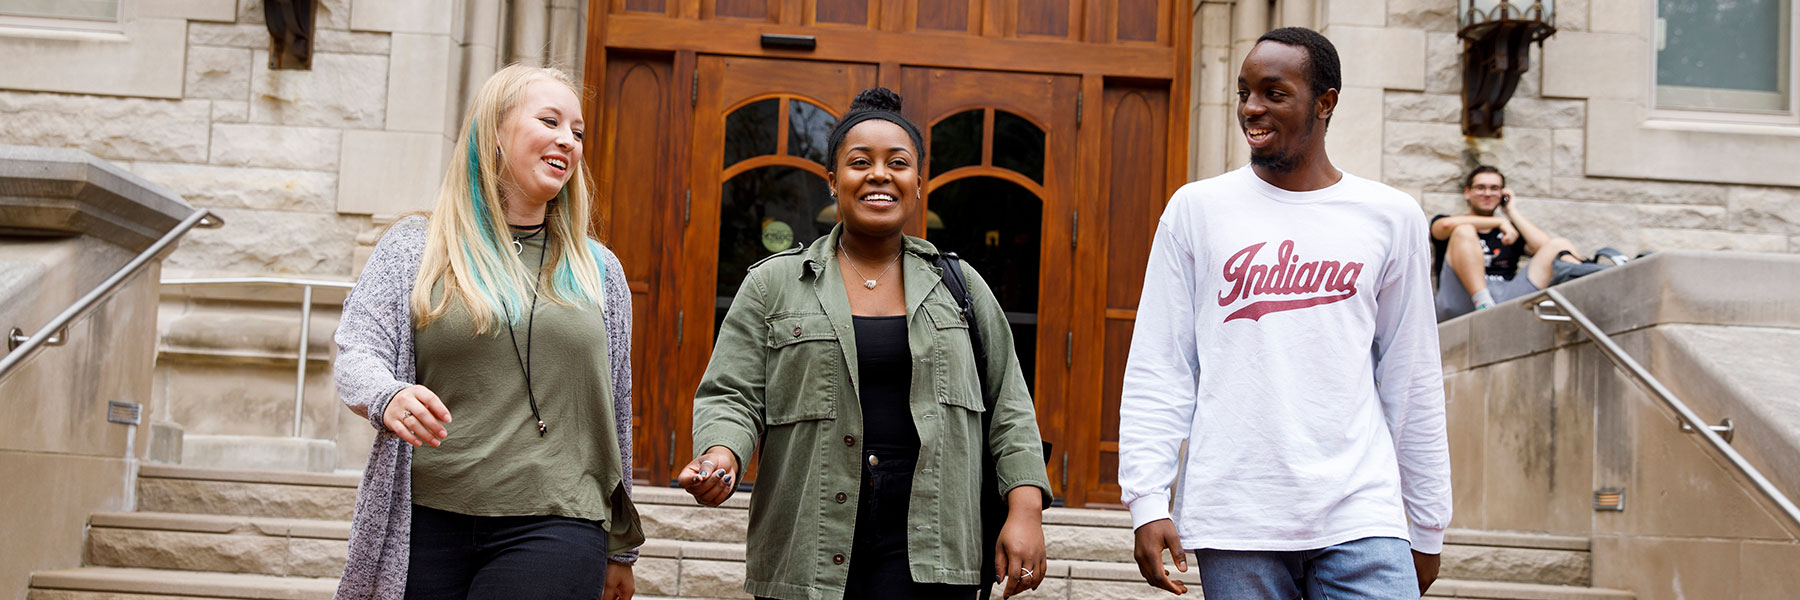 Three students walking in front of the entrance to Franklin Hall.